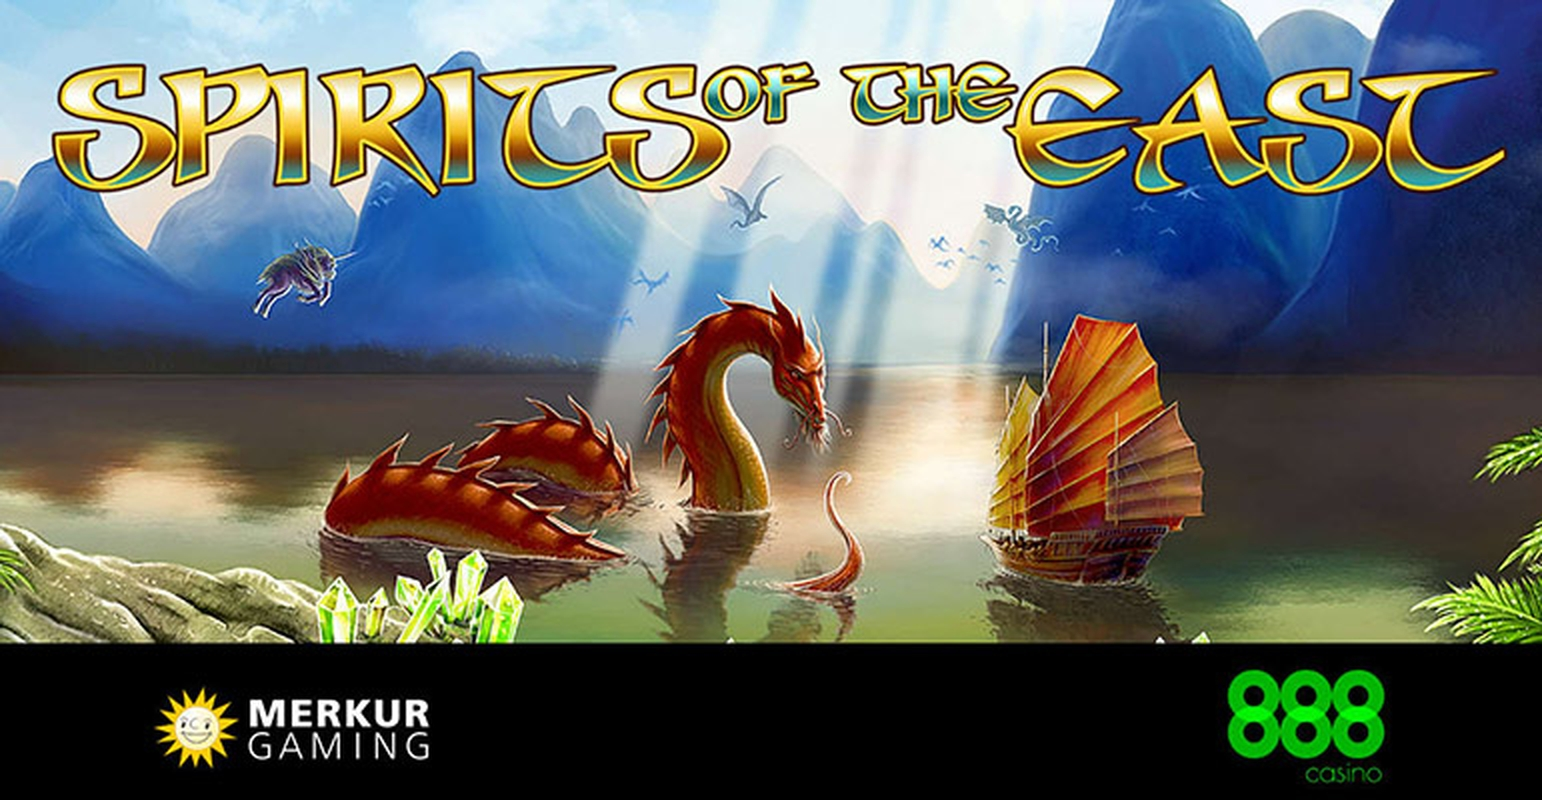 The Spirits of the East Online Slot Demo Game by Merkur Gaming